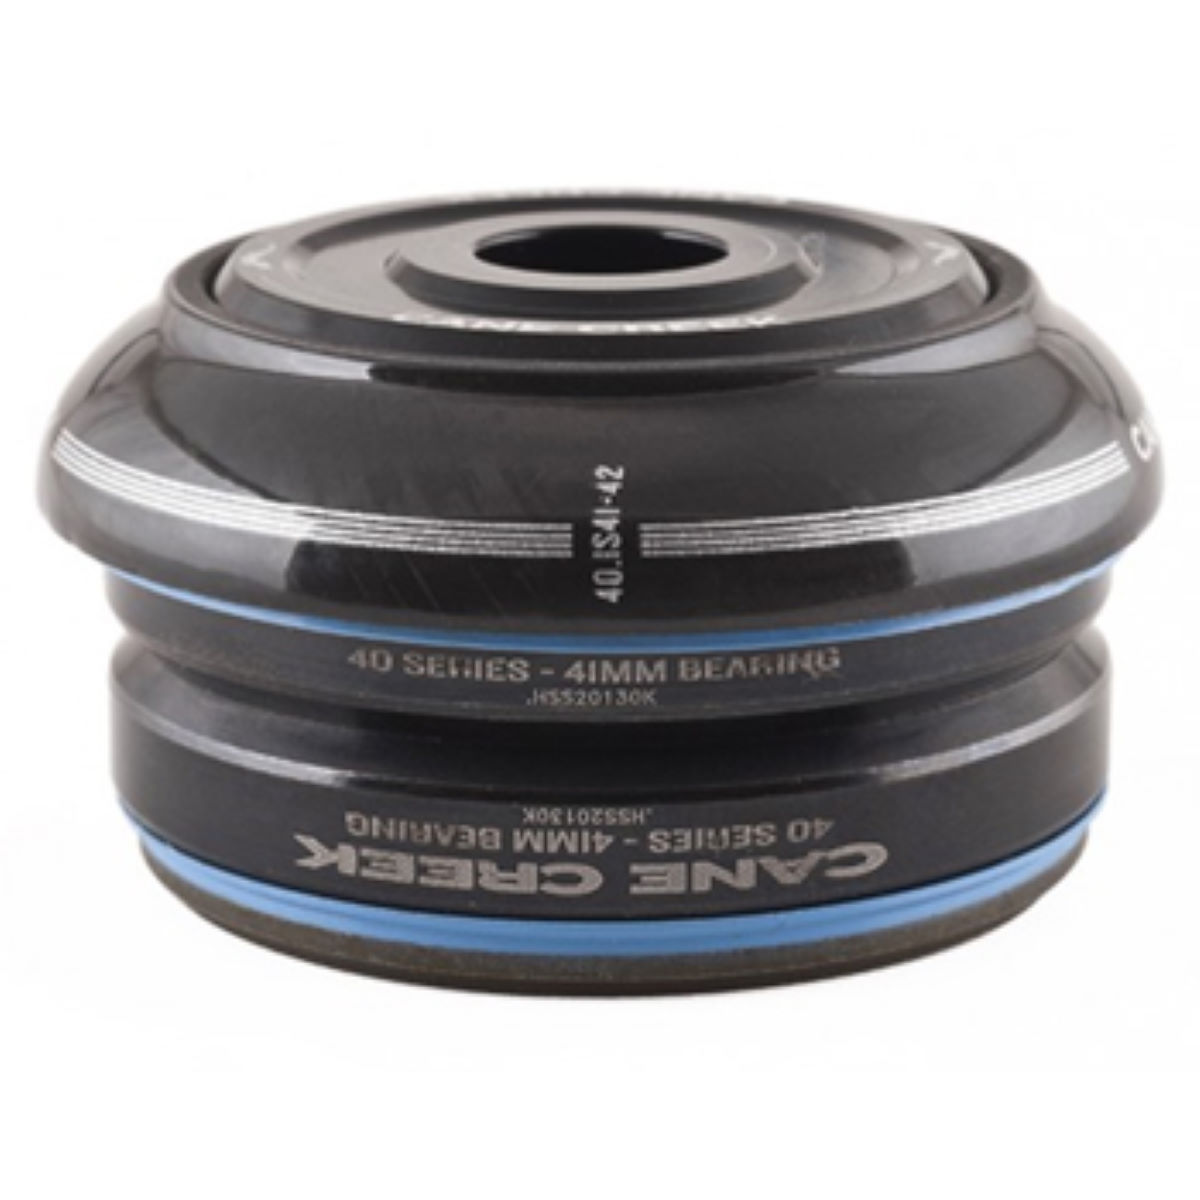 Cane Creek 40 Series IS Integrated Carbon 1 1/8 Inch Headset